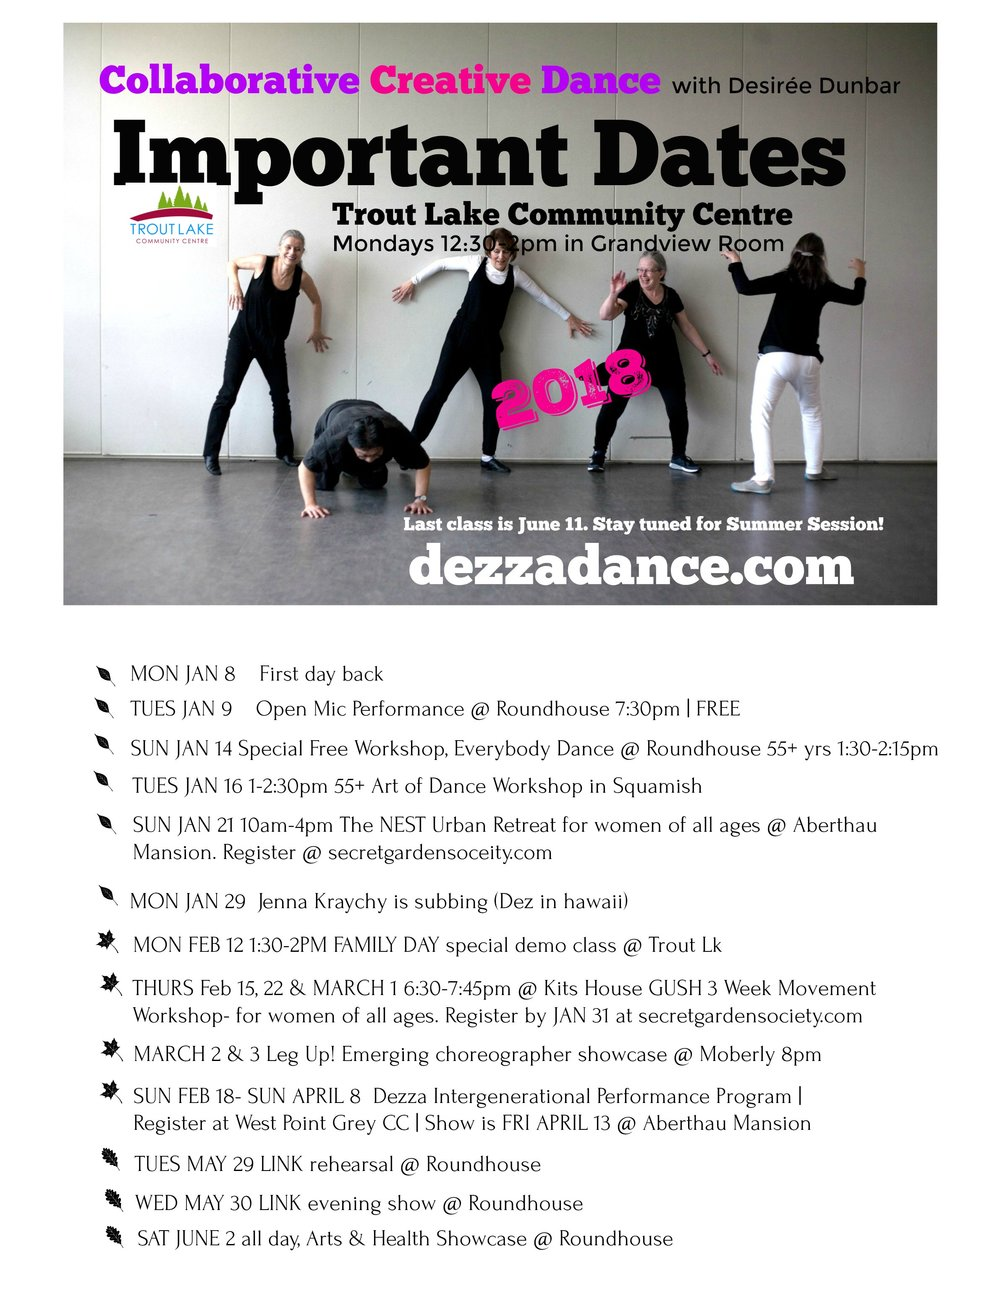 dezza-dance-important-dates